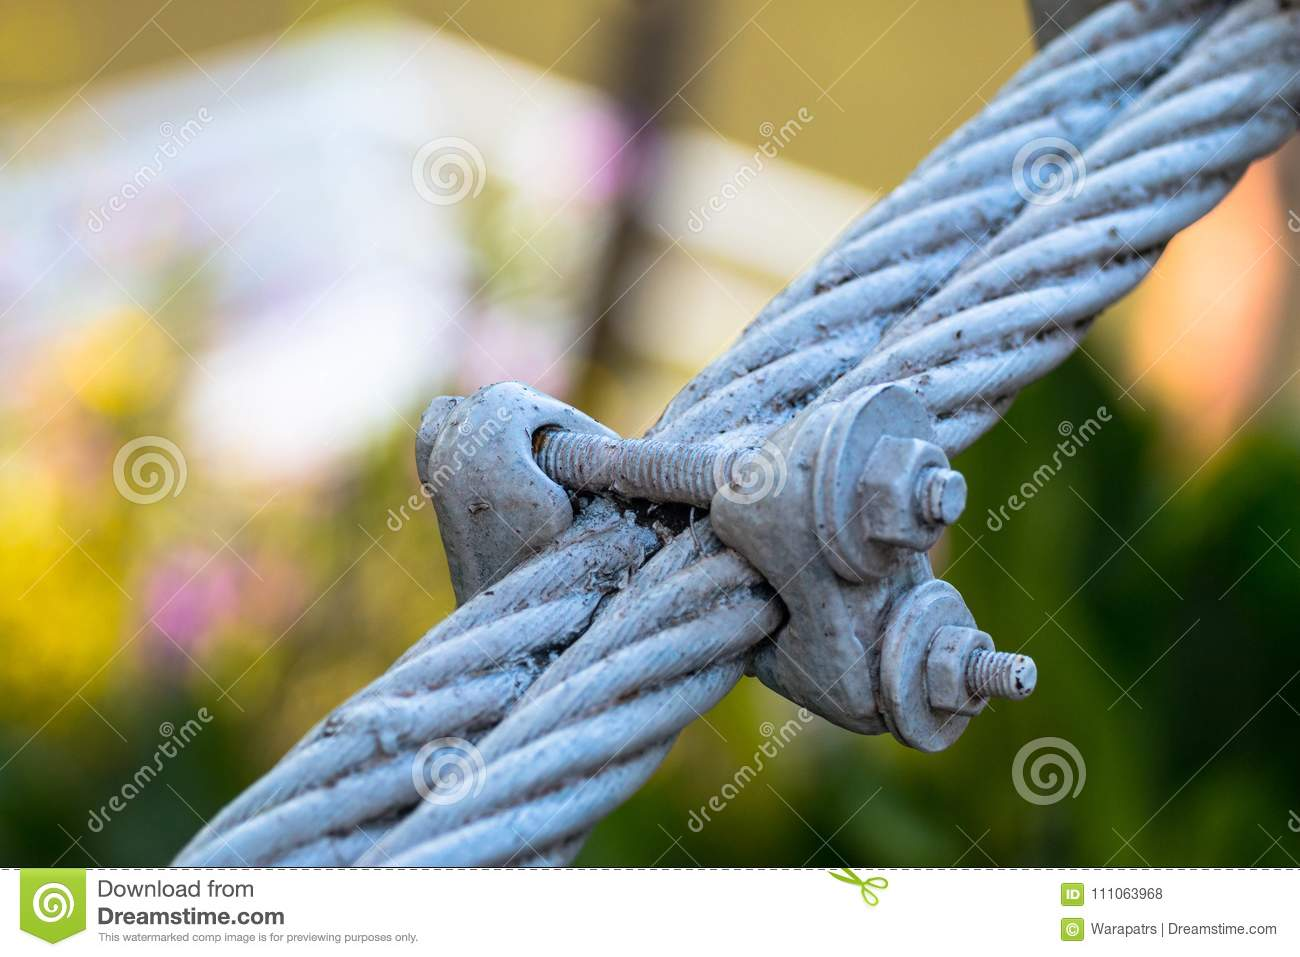 Steal Wire Rope Concept Friendship Or Strong Stock Photo - Image of ...